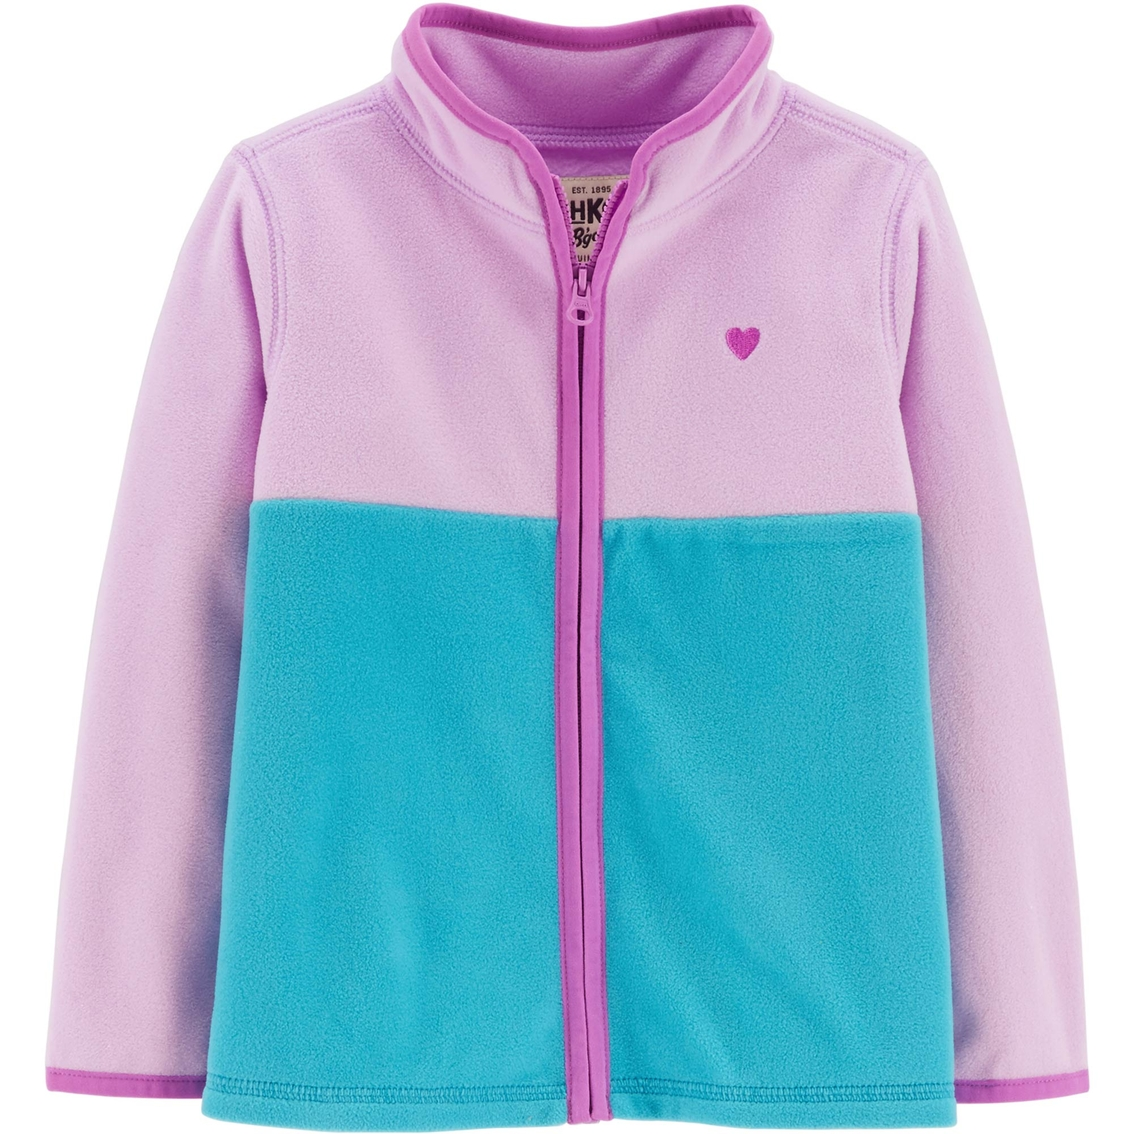 f4d725f42 Oshkosh B gosh Toddler Girls Ruby Colorblock Fleece